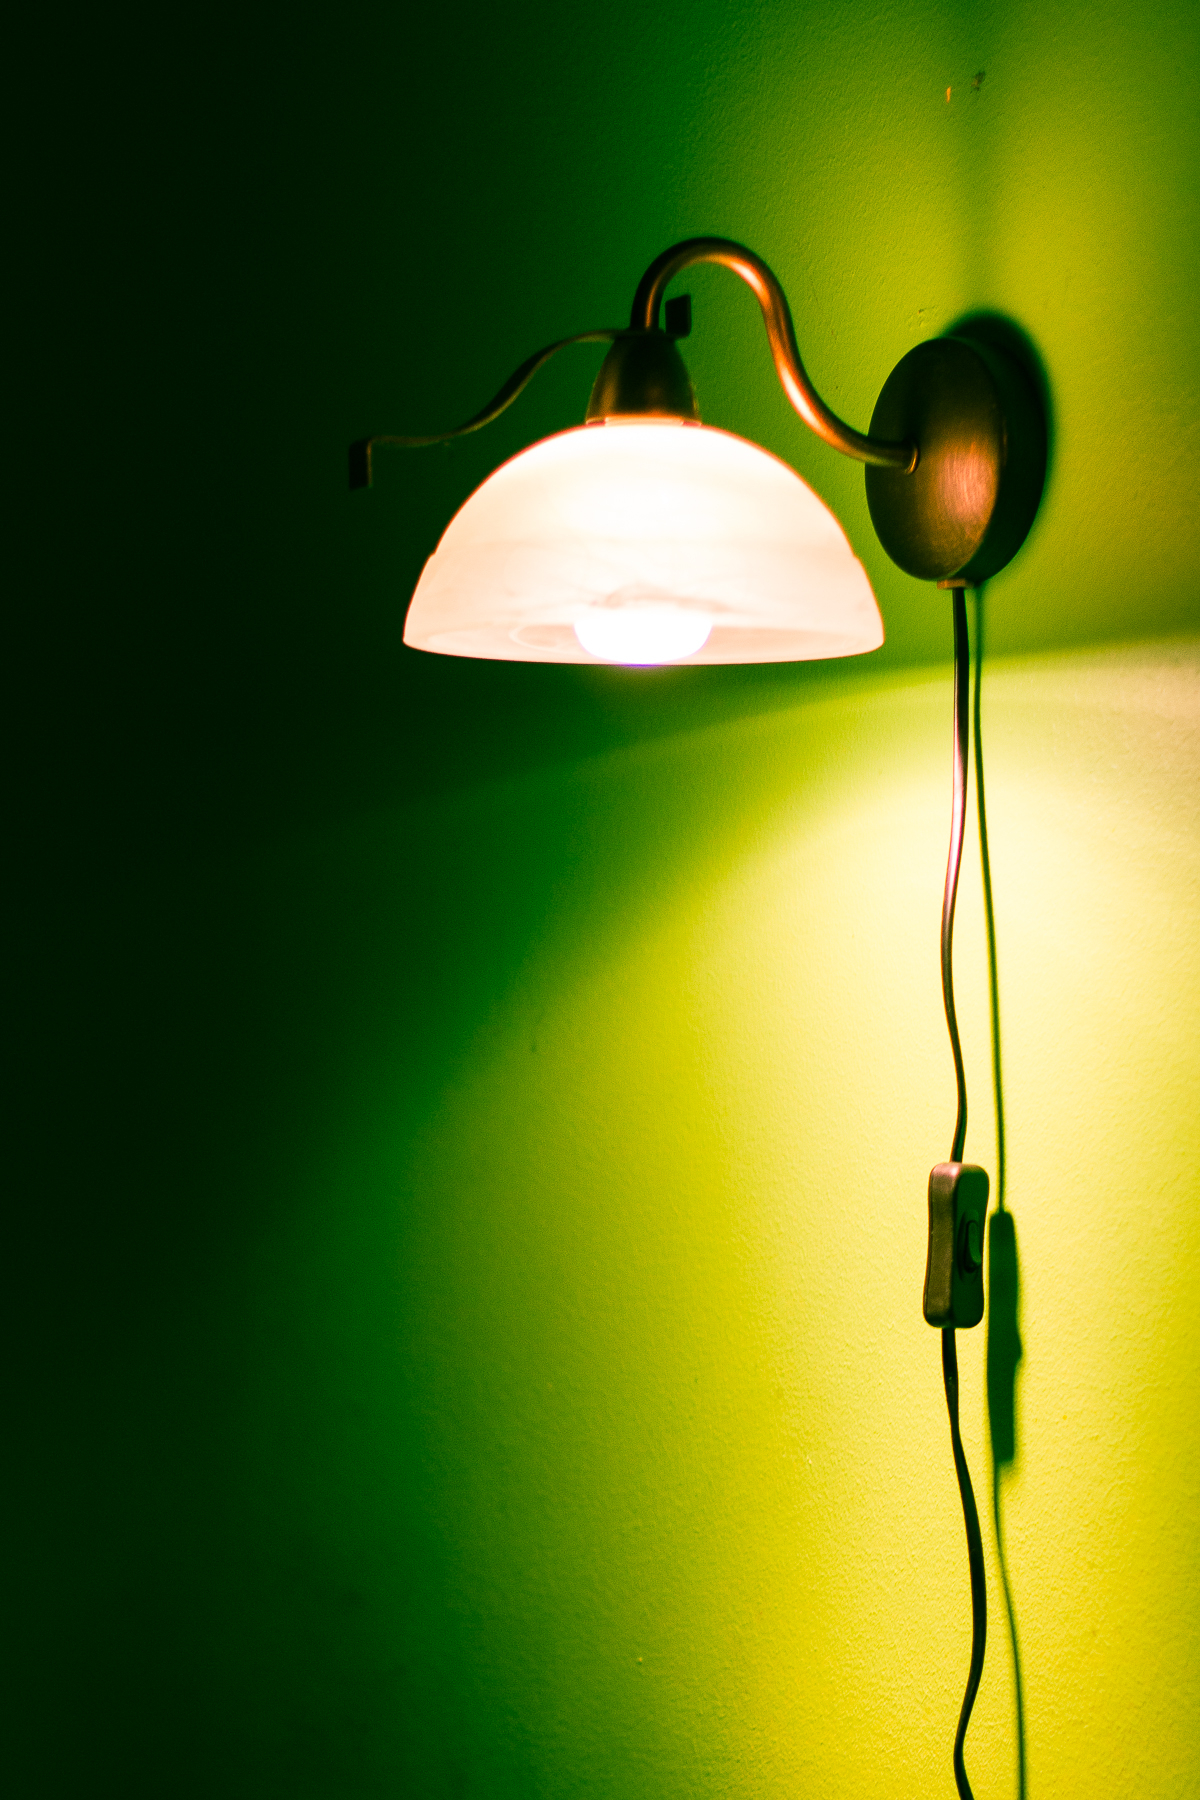 Lamp On A Green Wall Via @Atisgailis